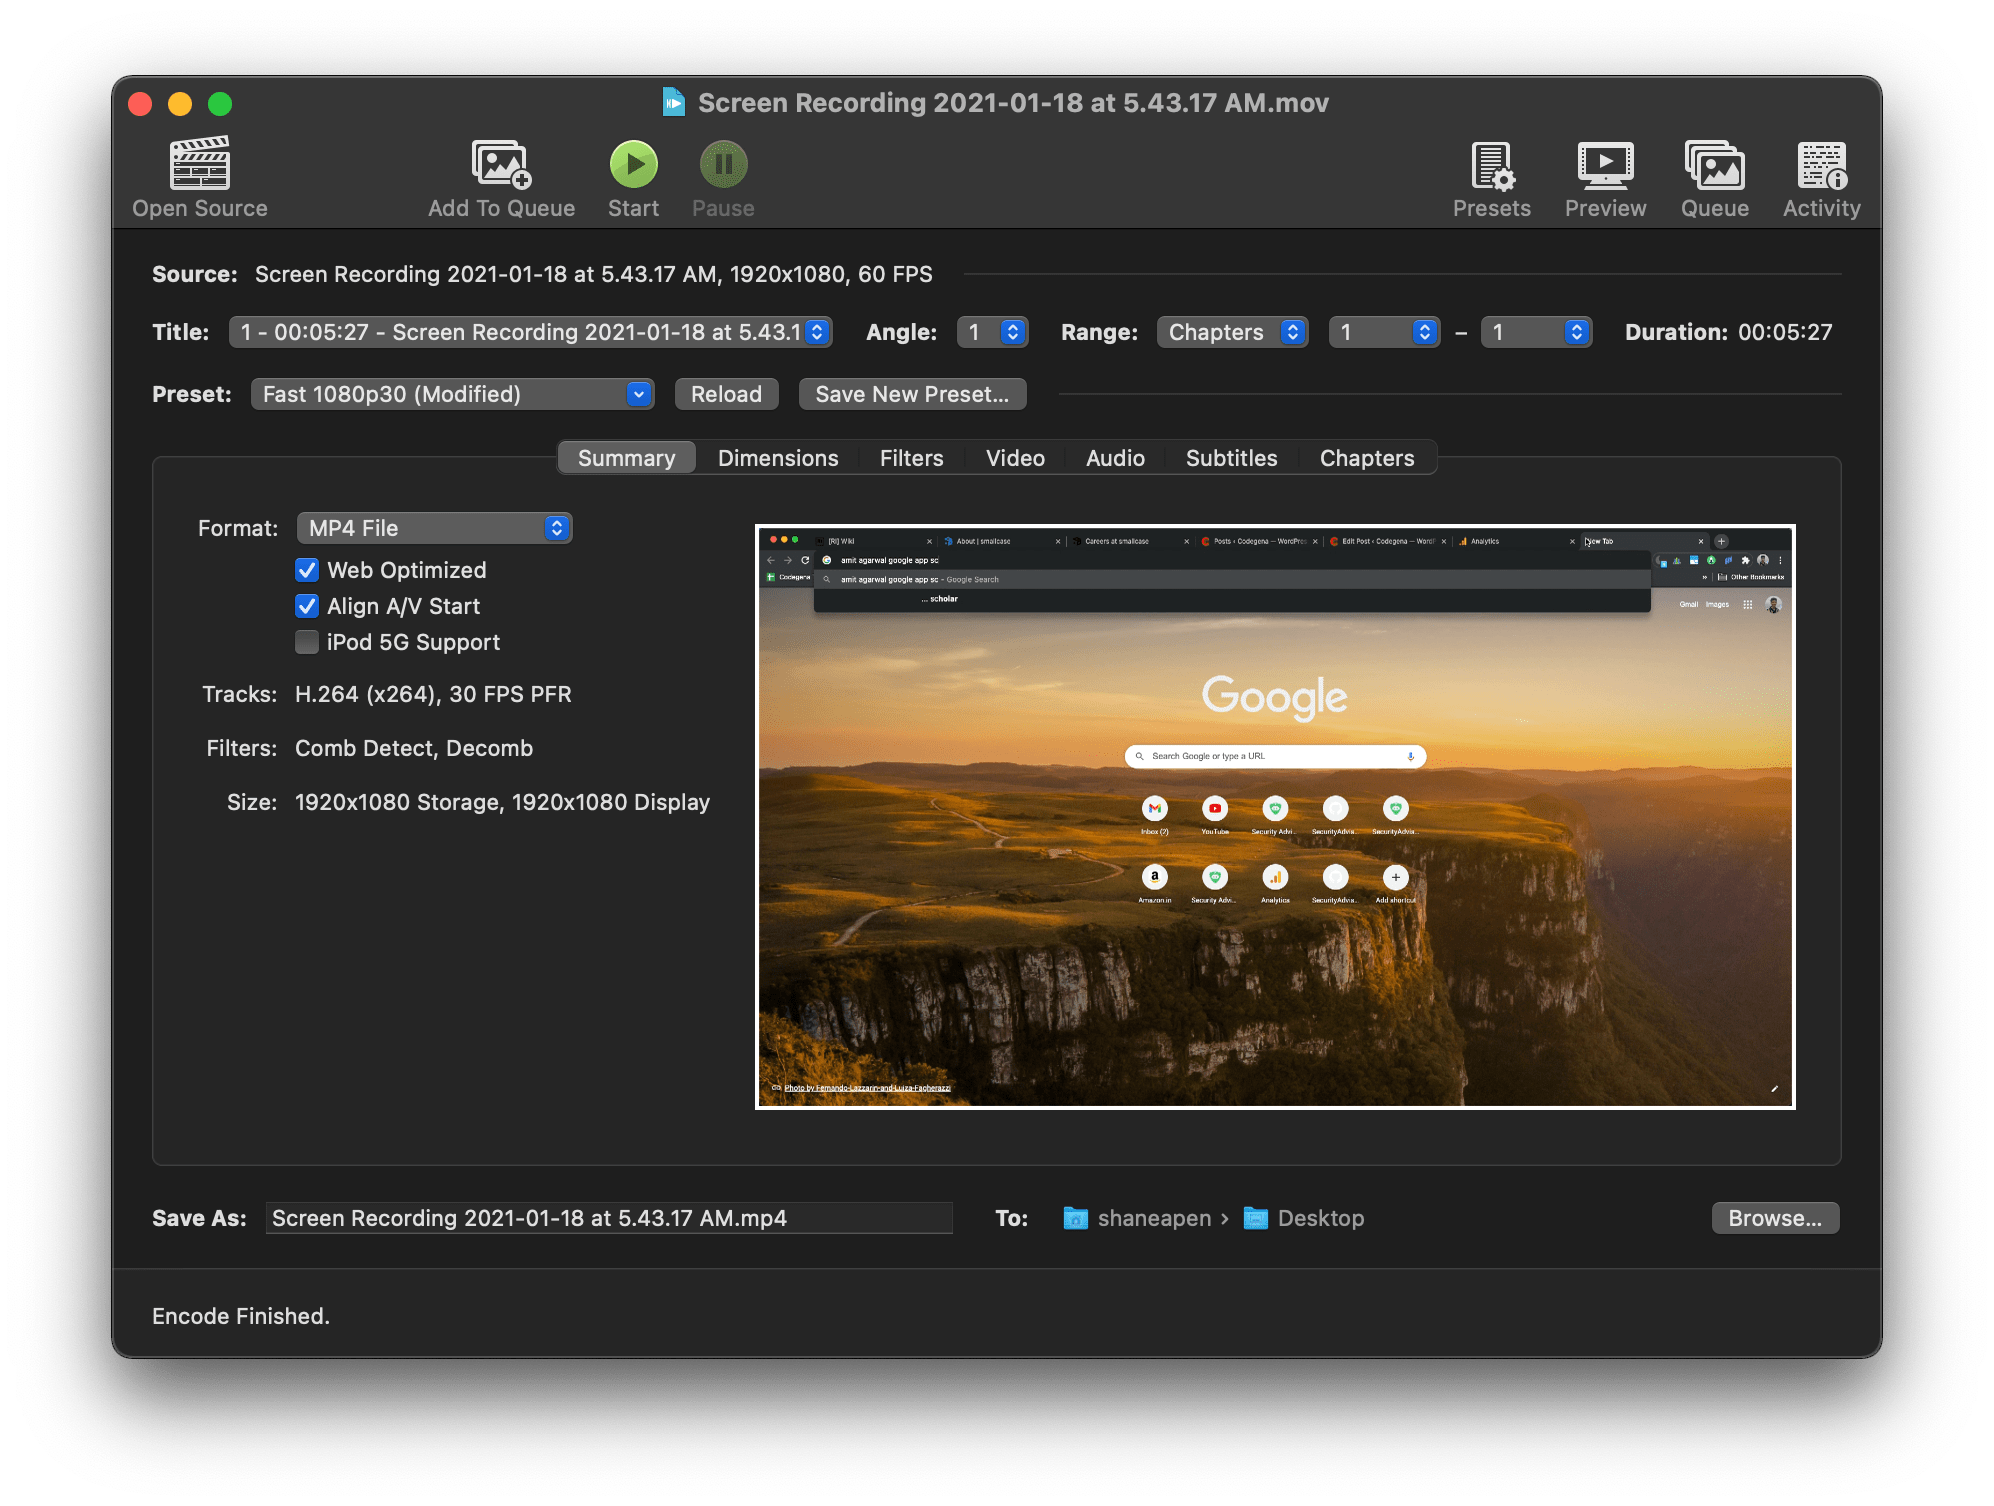 Reduce QuickTime Screen recording file size with handbrake